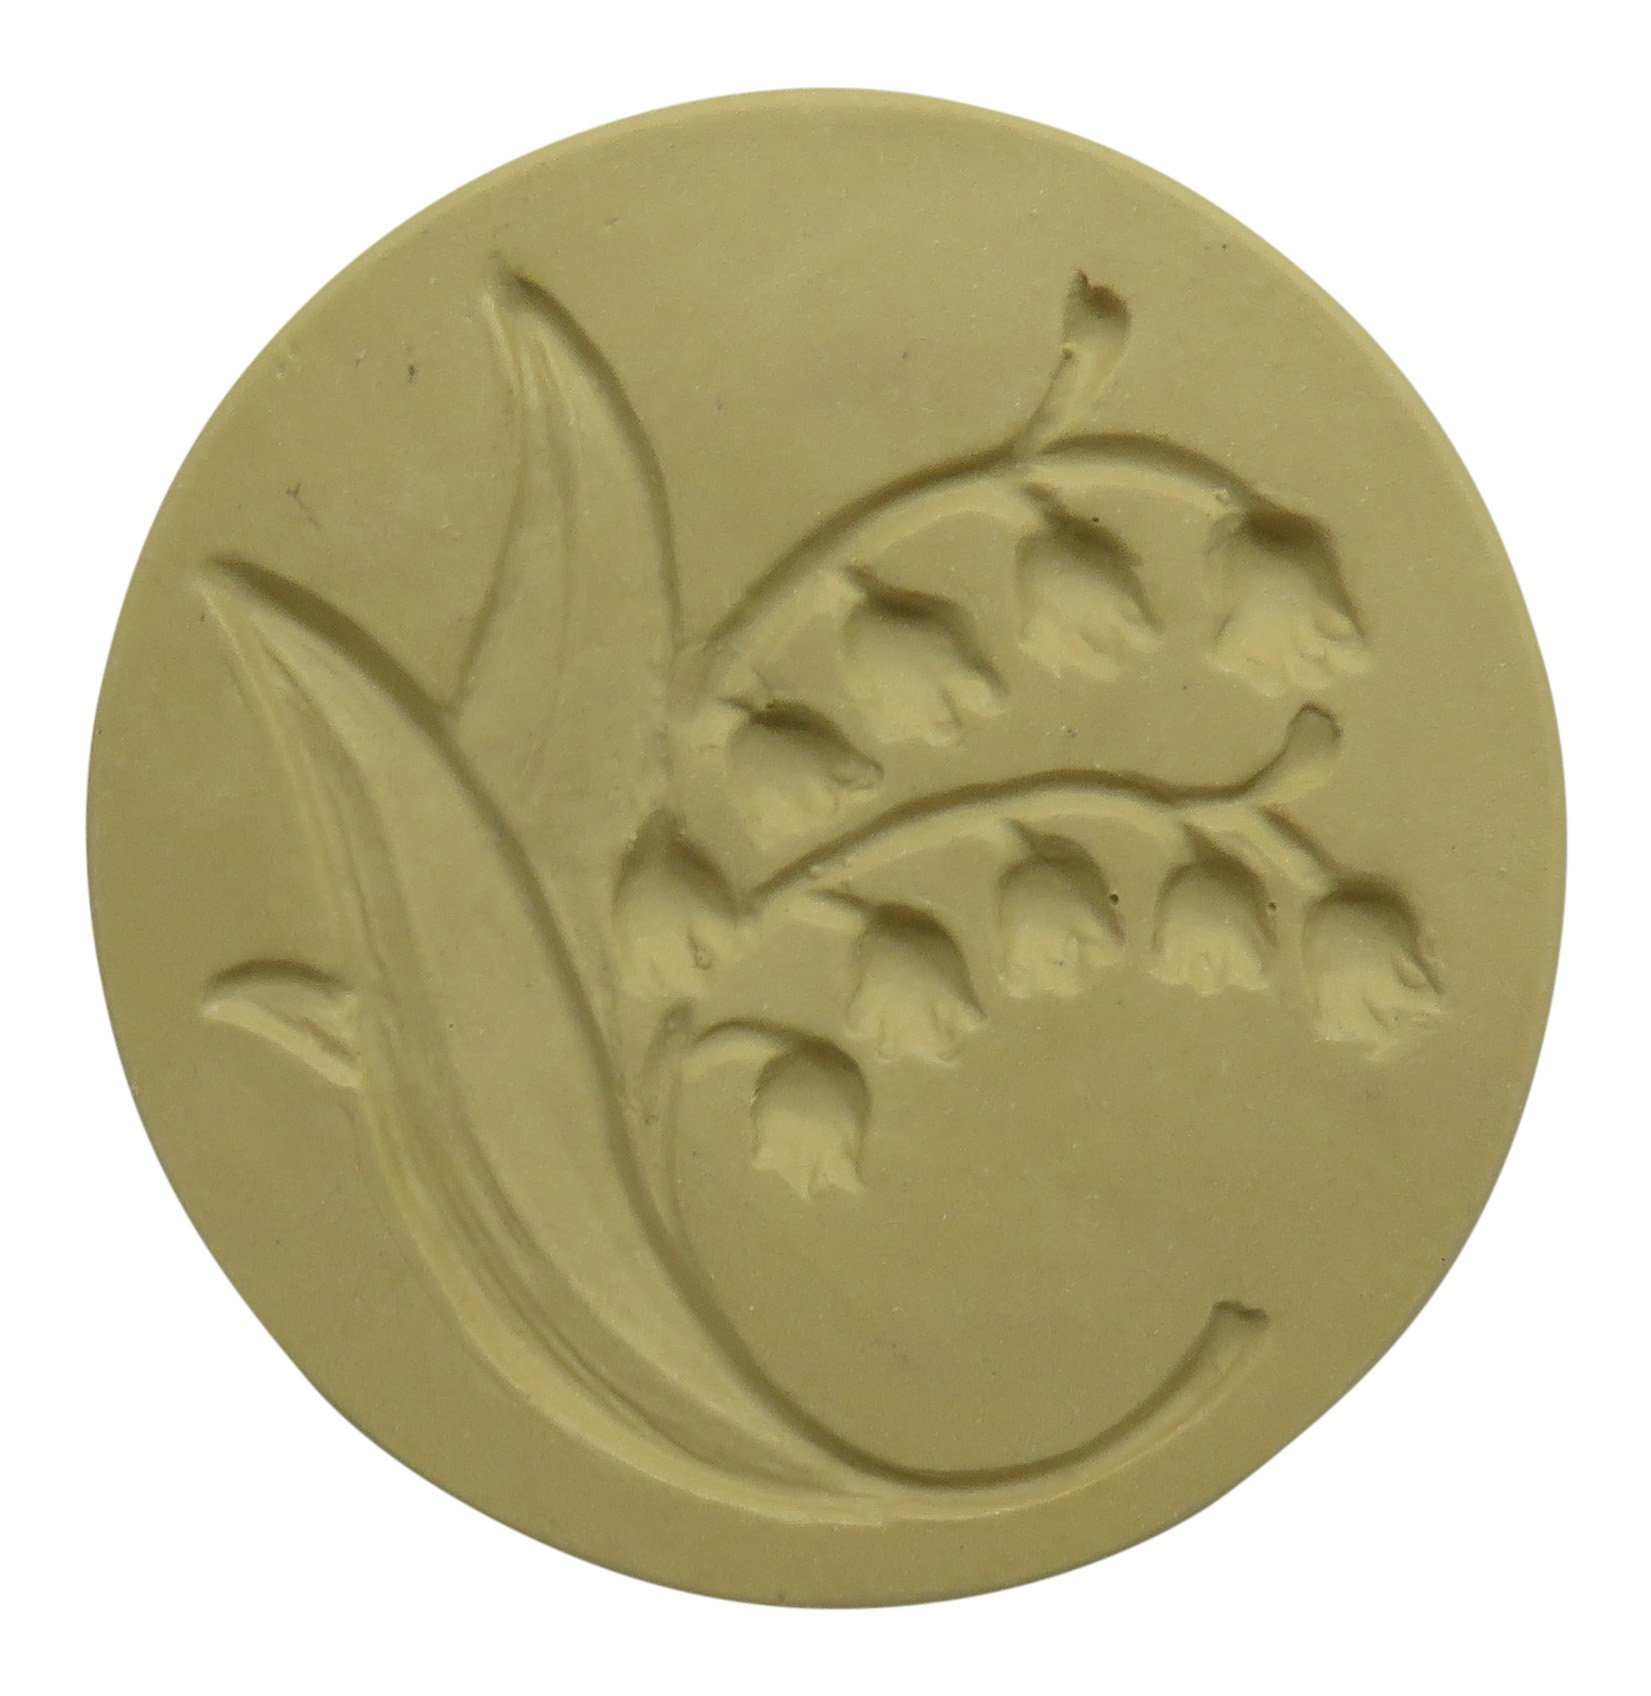 Brown Bag Lily of the Valley Cookie Stamp - Art Nouveau Flower Series